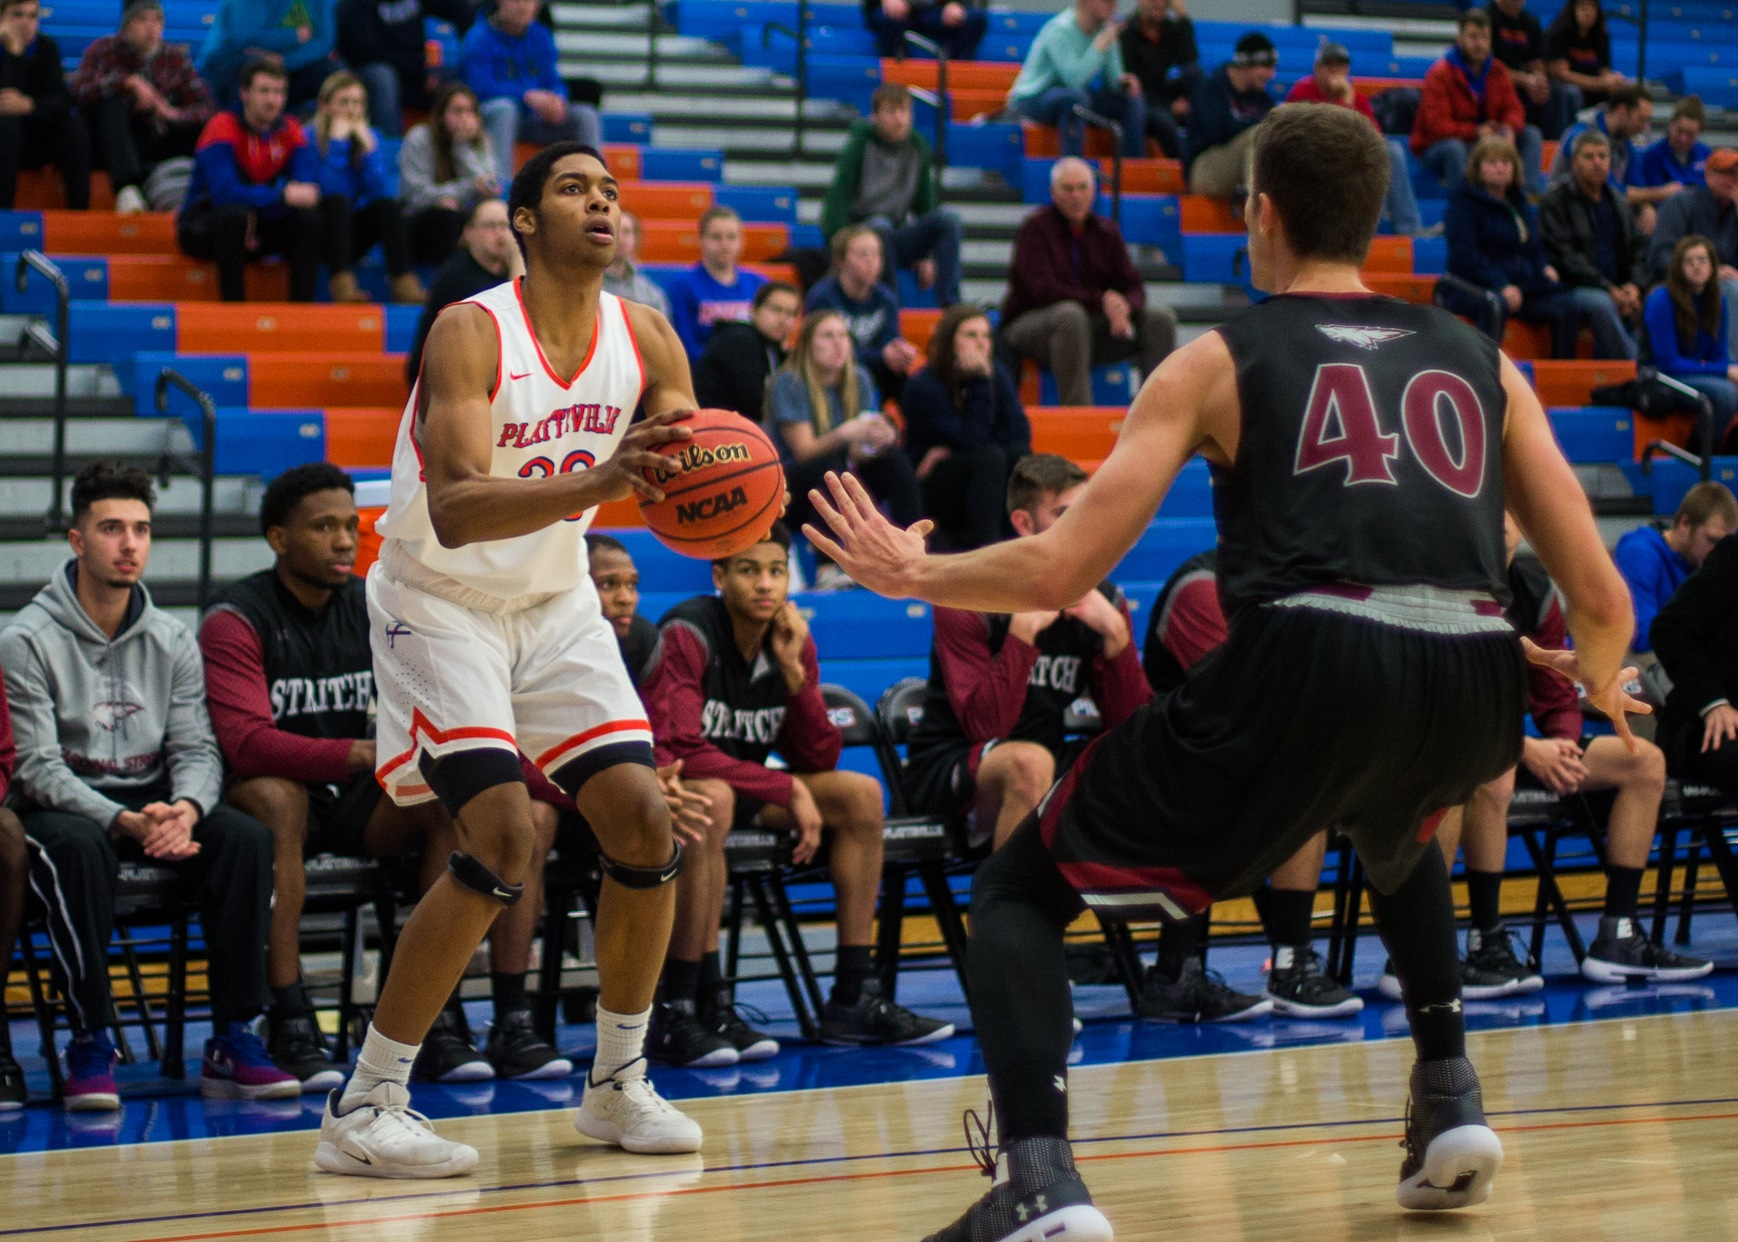 Hot shooting propels Pioneers to victory